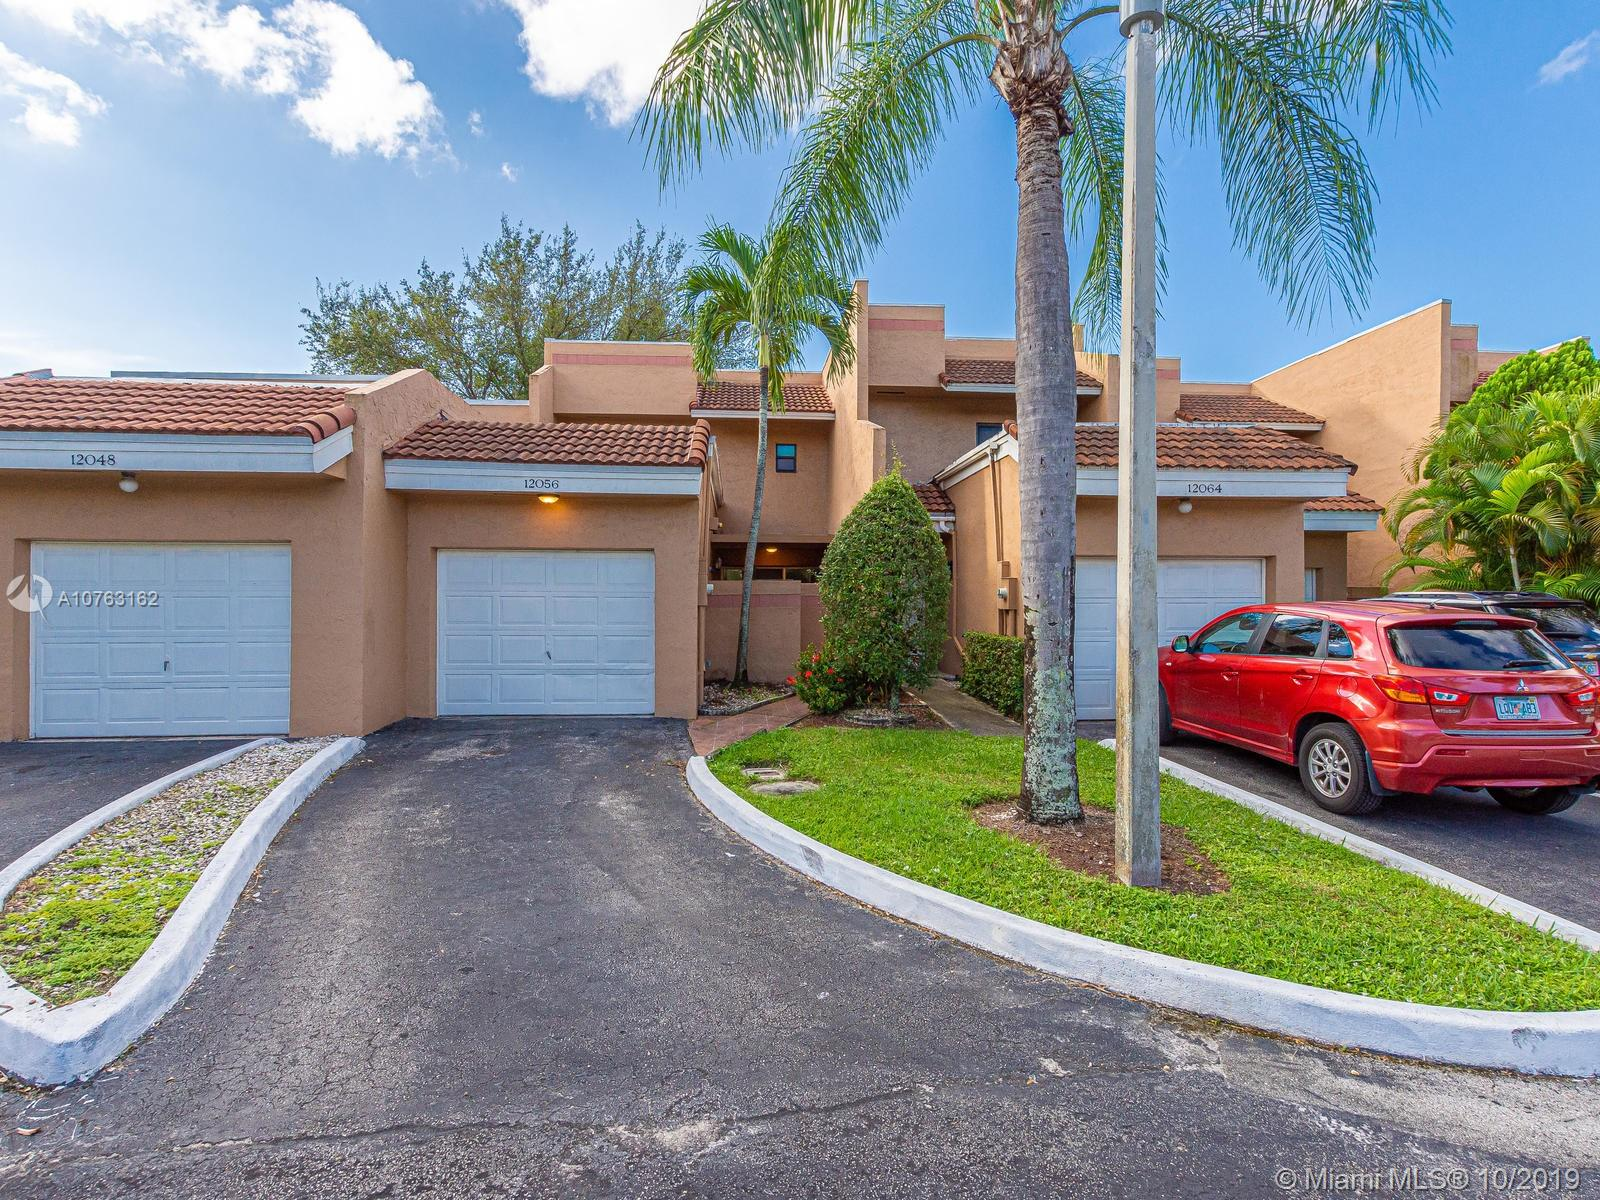 Property for sale at 12056 S Las Palmas Dr Unit: 15, Pembroke Pines,  Florida 33025